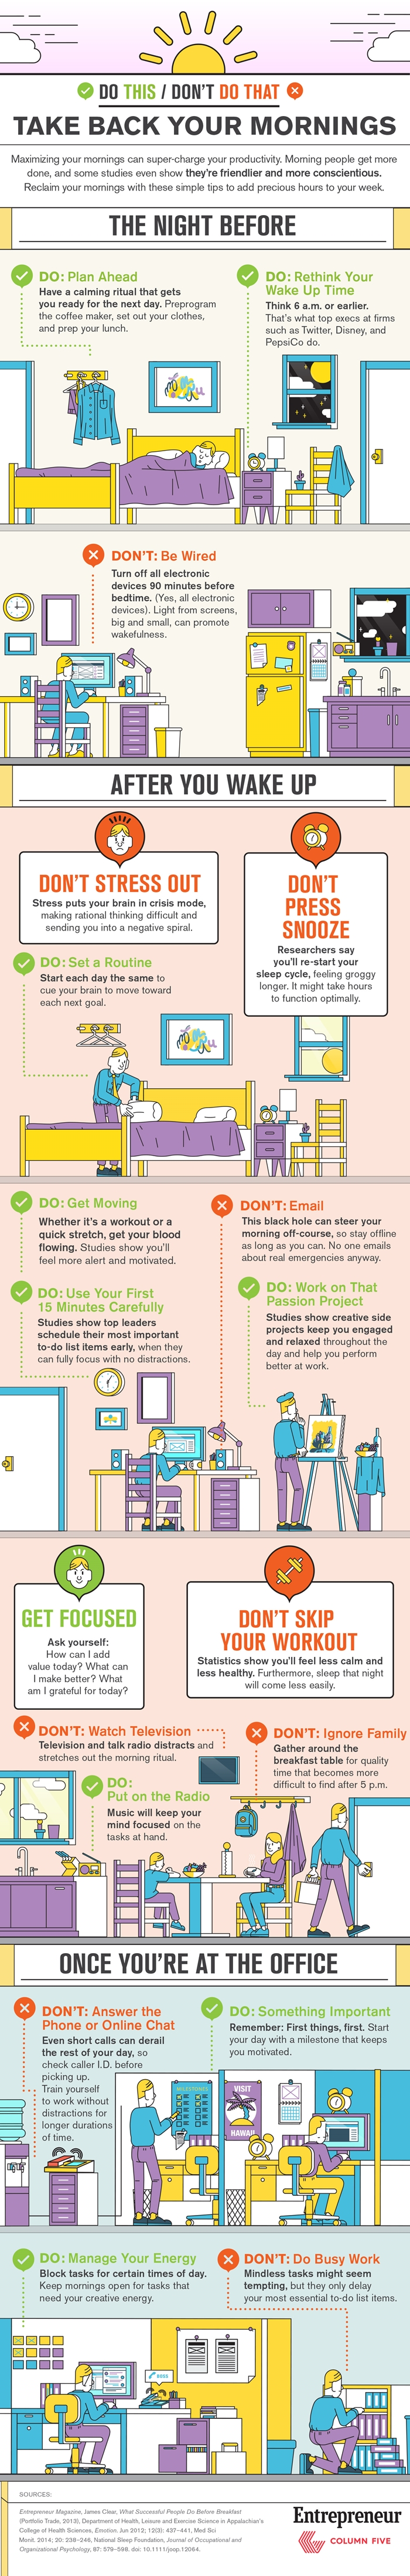 1413563200-take-your-mornings-back-infographic-700